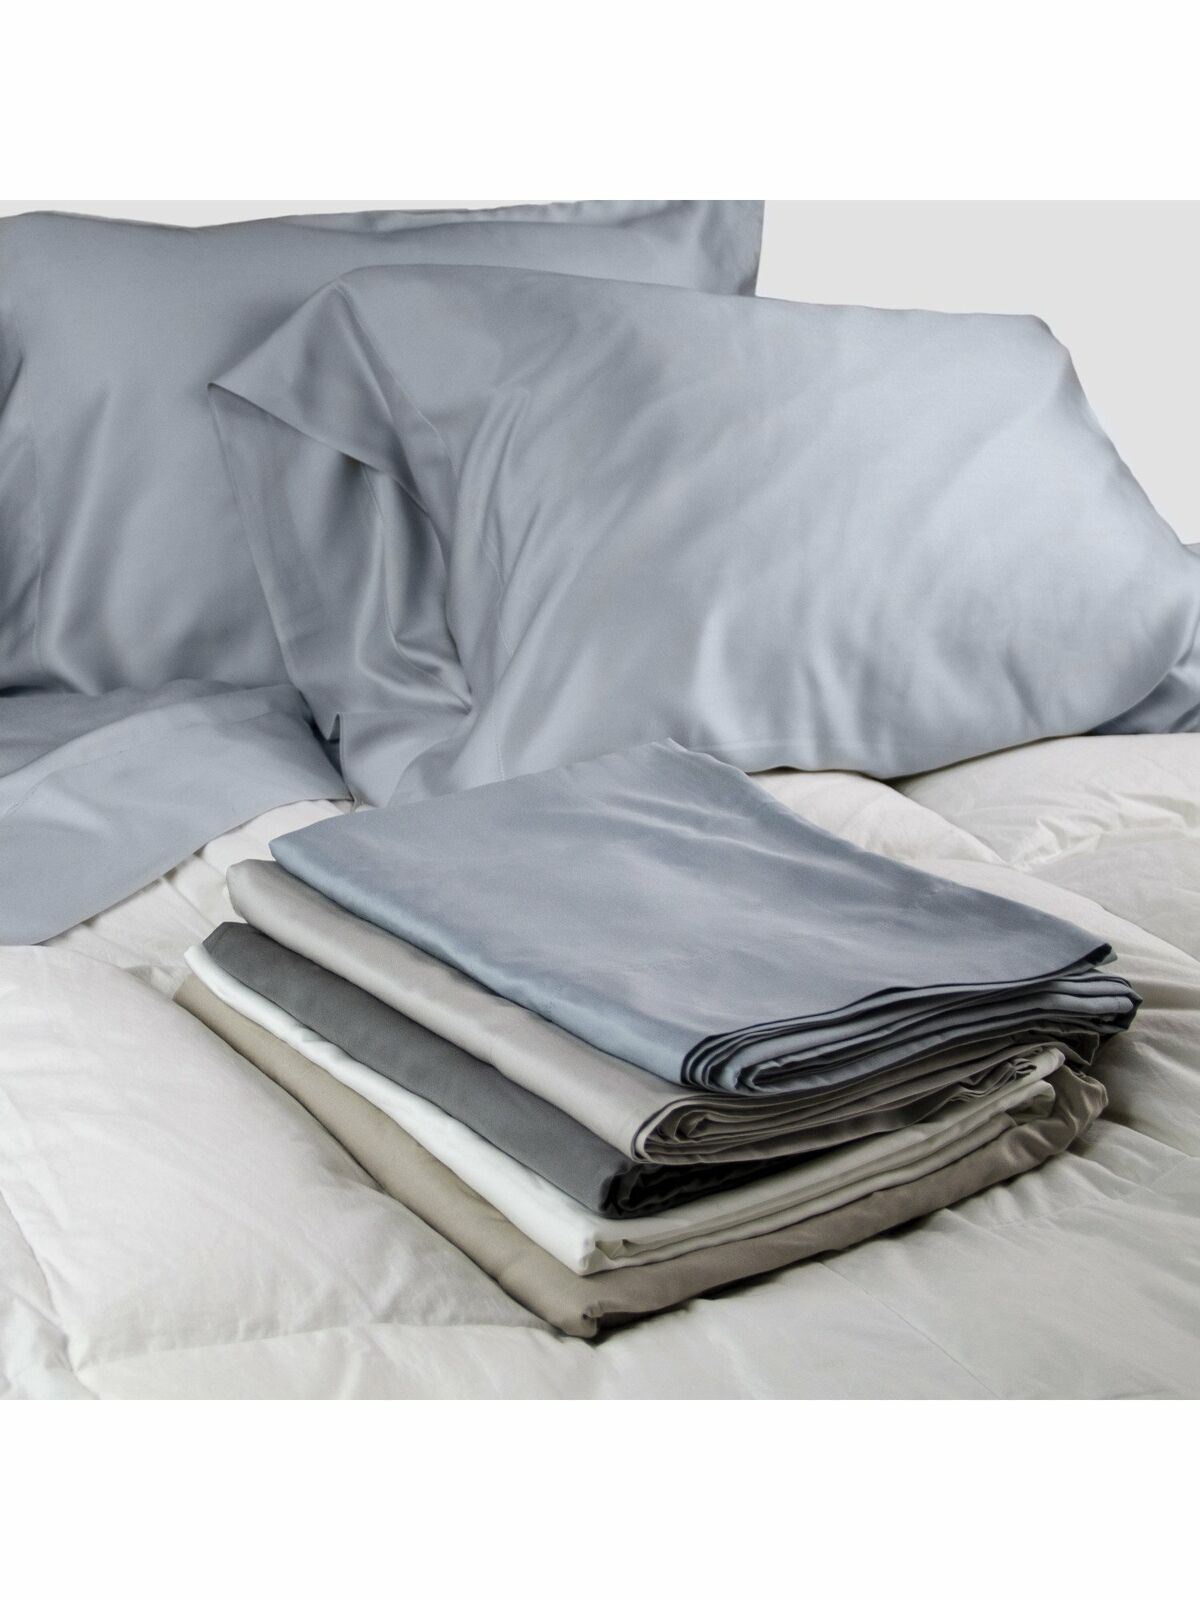 100% Sateen Bamboo Sheets Set--Pillow cases, Top Sheet, and Fitted Sheet by W...